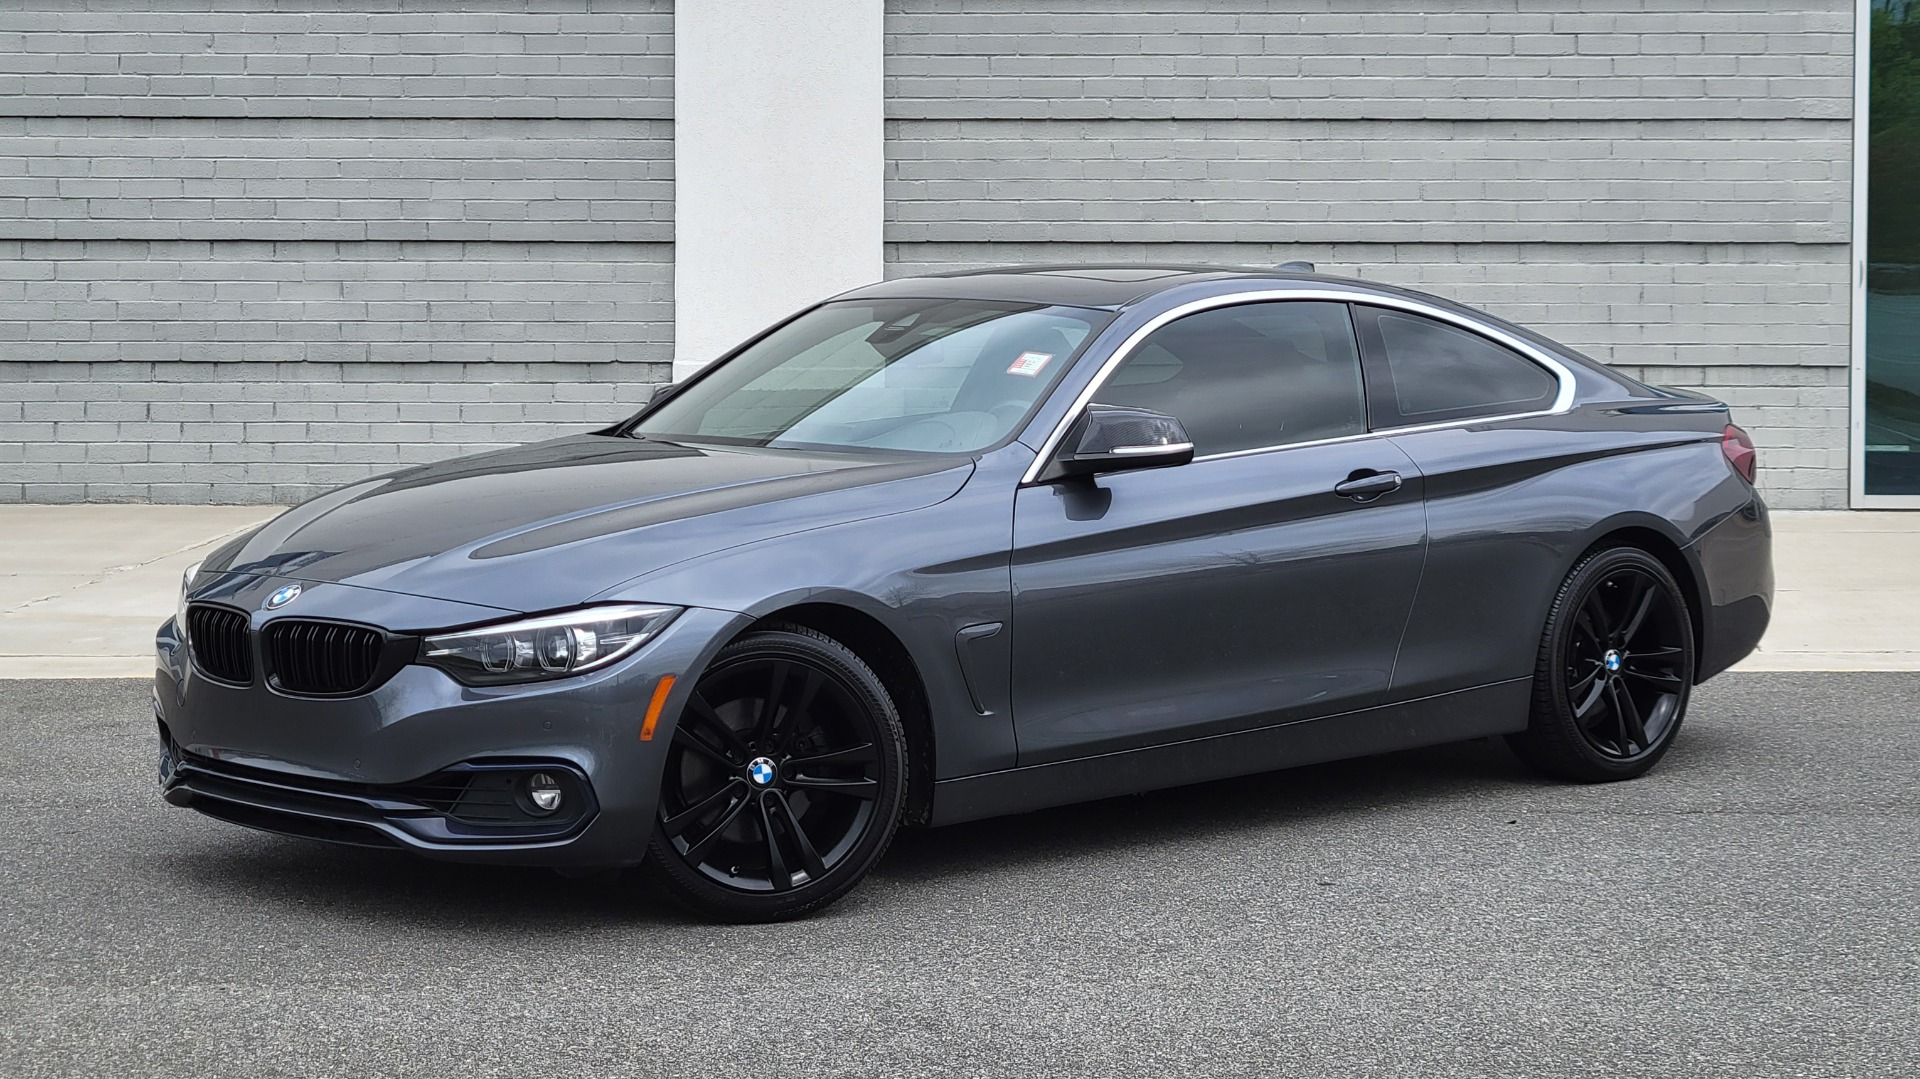 Used 2019 BMW 4 SERIES 430I COUPE 2.0L / RWD / DRVR ASST / CONV PKG / SUNROOF / REARVIEW for sale $32,295 at Formula Imports in Charlotte NC 28227 12